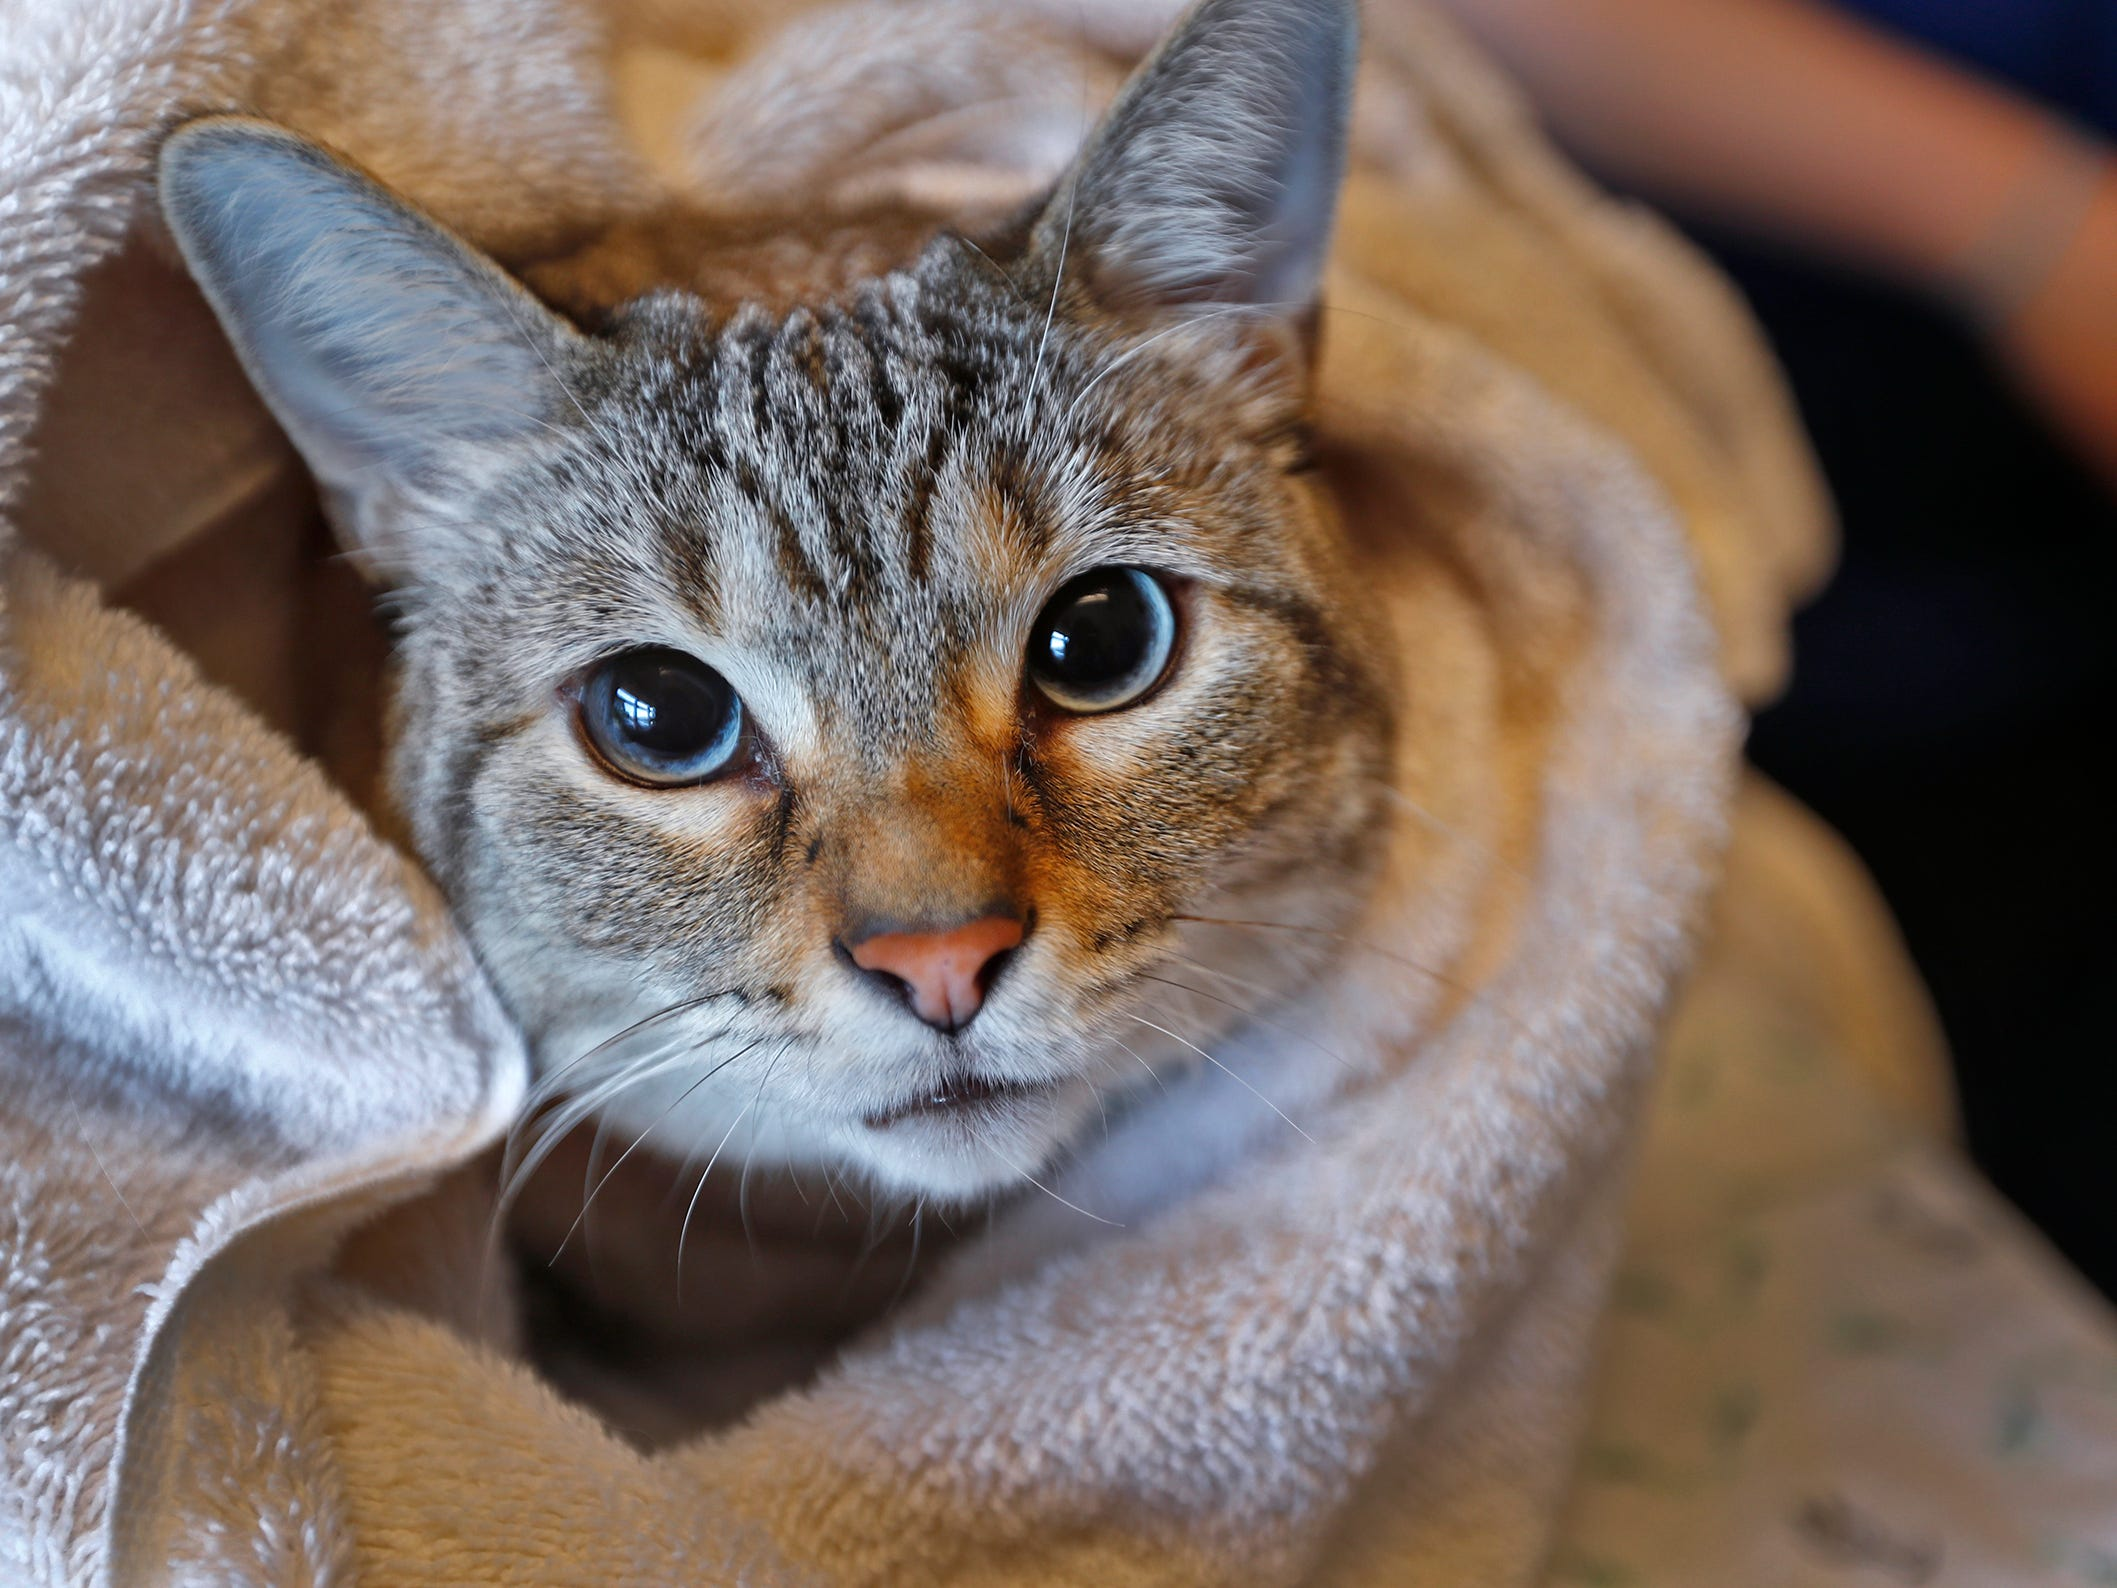 """Paw Patch Place RVT Charlotte Threlkeld's cat, Sage, peeks from inside a towel, at Paw Patch Place Animal Hospital, Friday, Aug. 31, 2018.  The veterinary clinic is the only one in Indiana to earn special fear free certification from an international program that aims to help vets reduce anxiety for pets prone to feel stressed in their offices.  Sage is wrapped in a """"kitty cat burrito wrap"""" which gives cats comfort and a safe feeling.  Cats can also hide in the towel, if they wants.  And the vet can perform the exam while a cat is in the towel."""